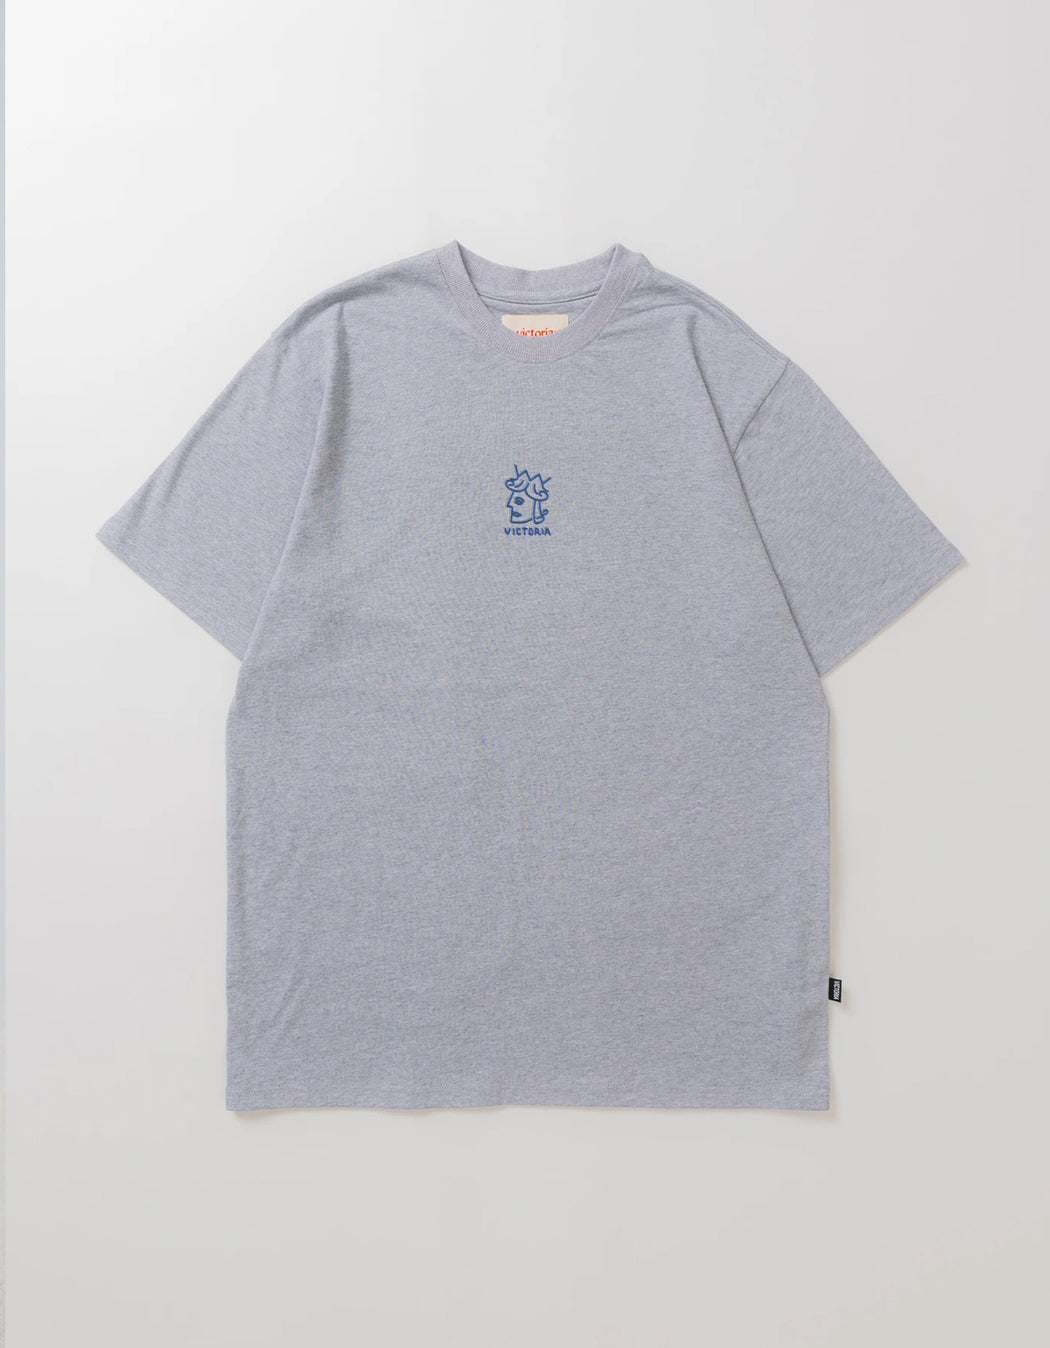 Victoria Offset Queen Head Tee, Heather Grey